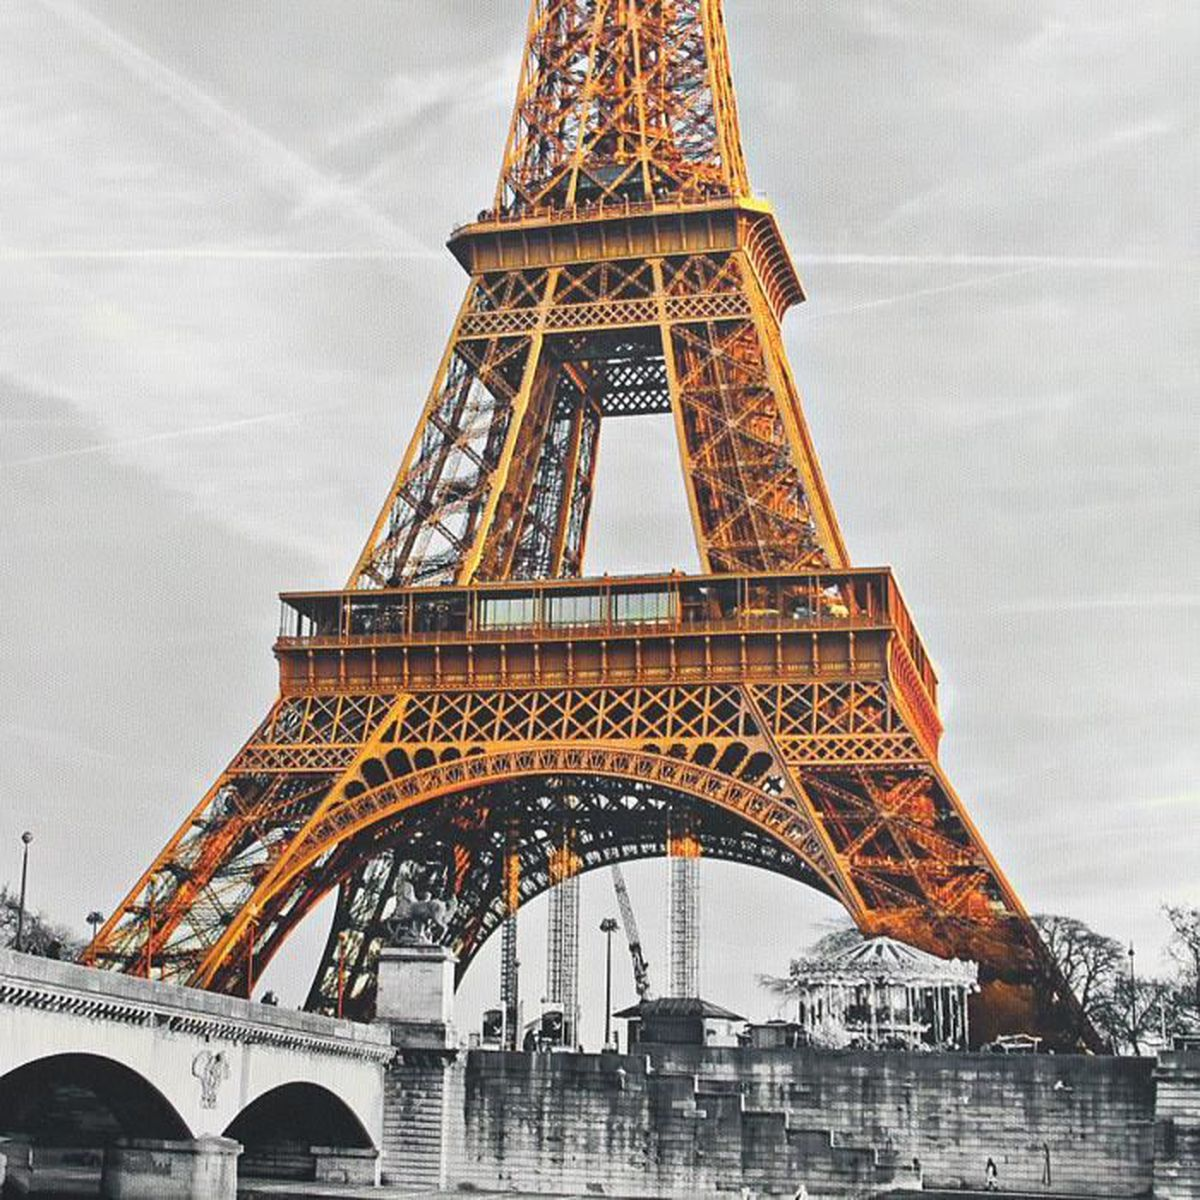 60 50cm peinture huile tour eiffel toile tableau abstraite art moderne d cor mur achat vente. Black Bedroom Furniture Sets. Home Design Ideas